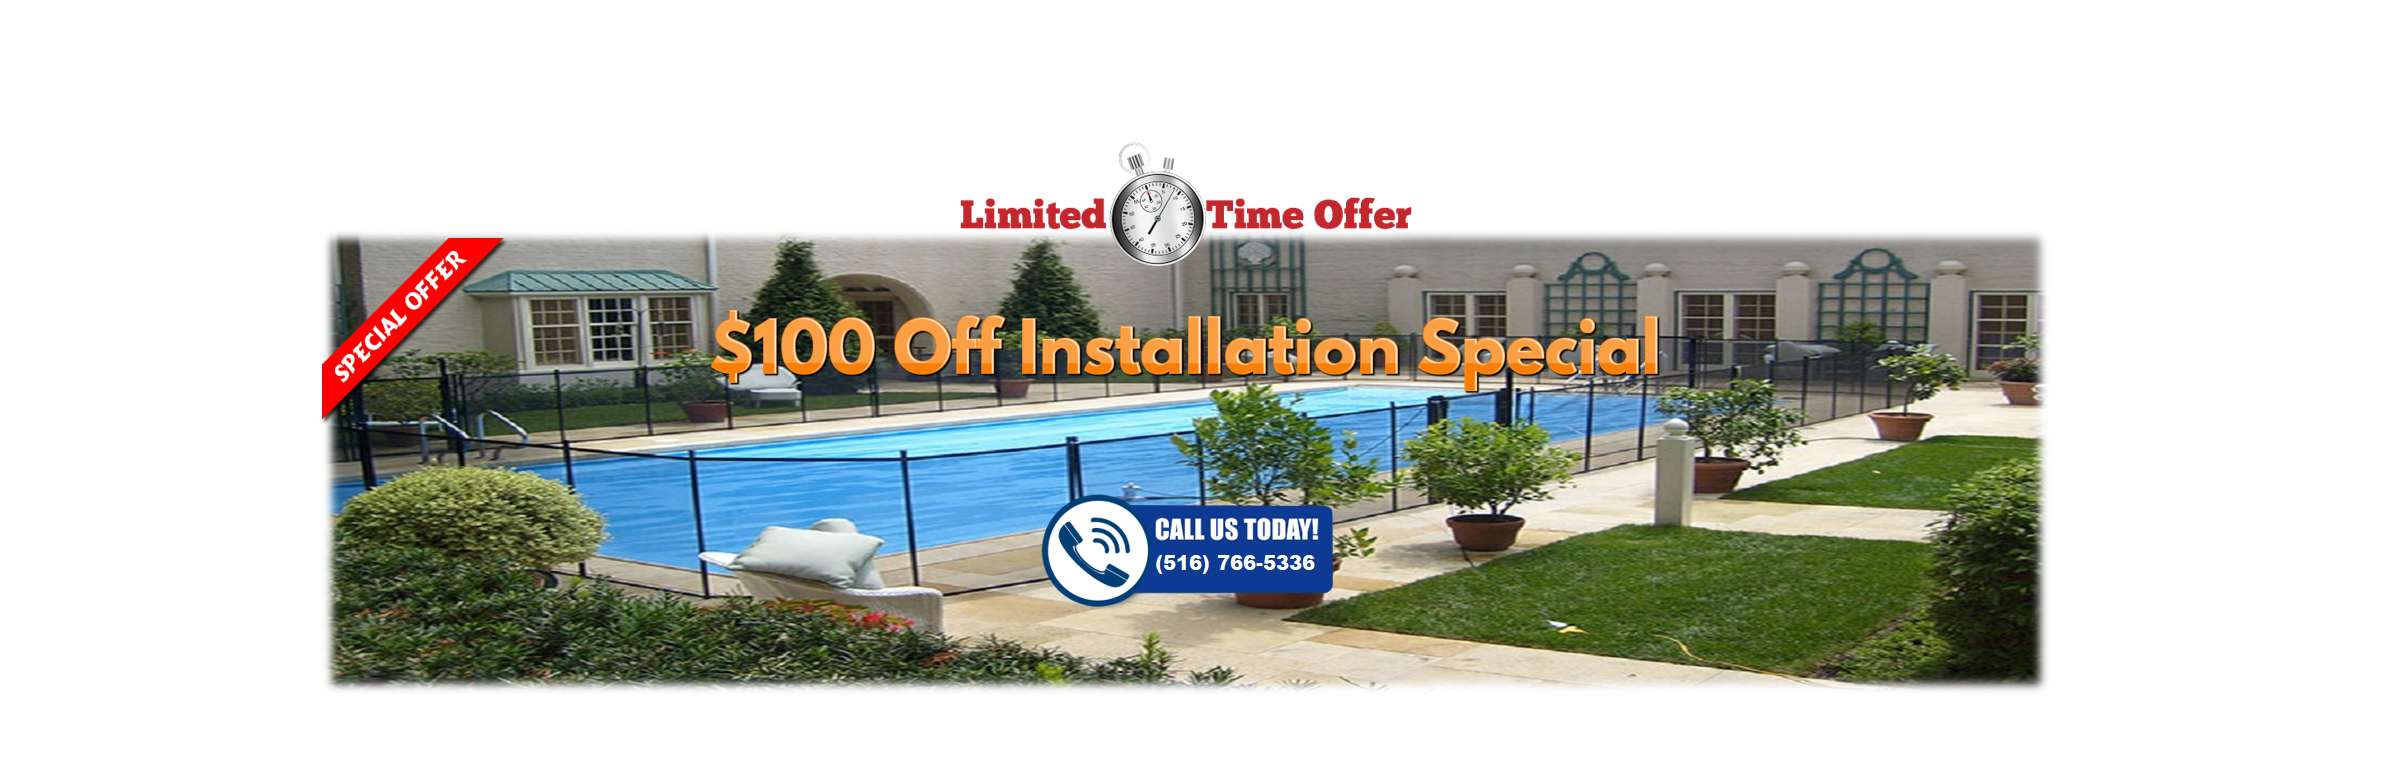 pool-fence-special-promotion